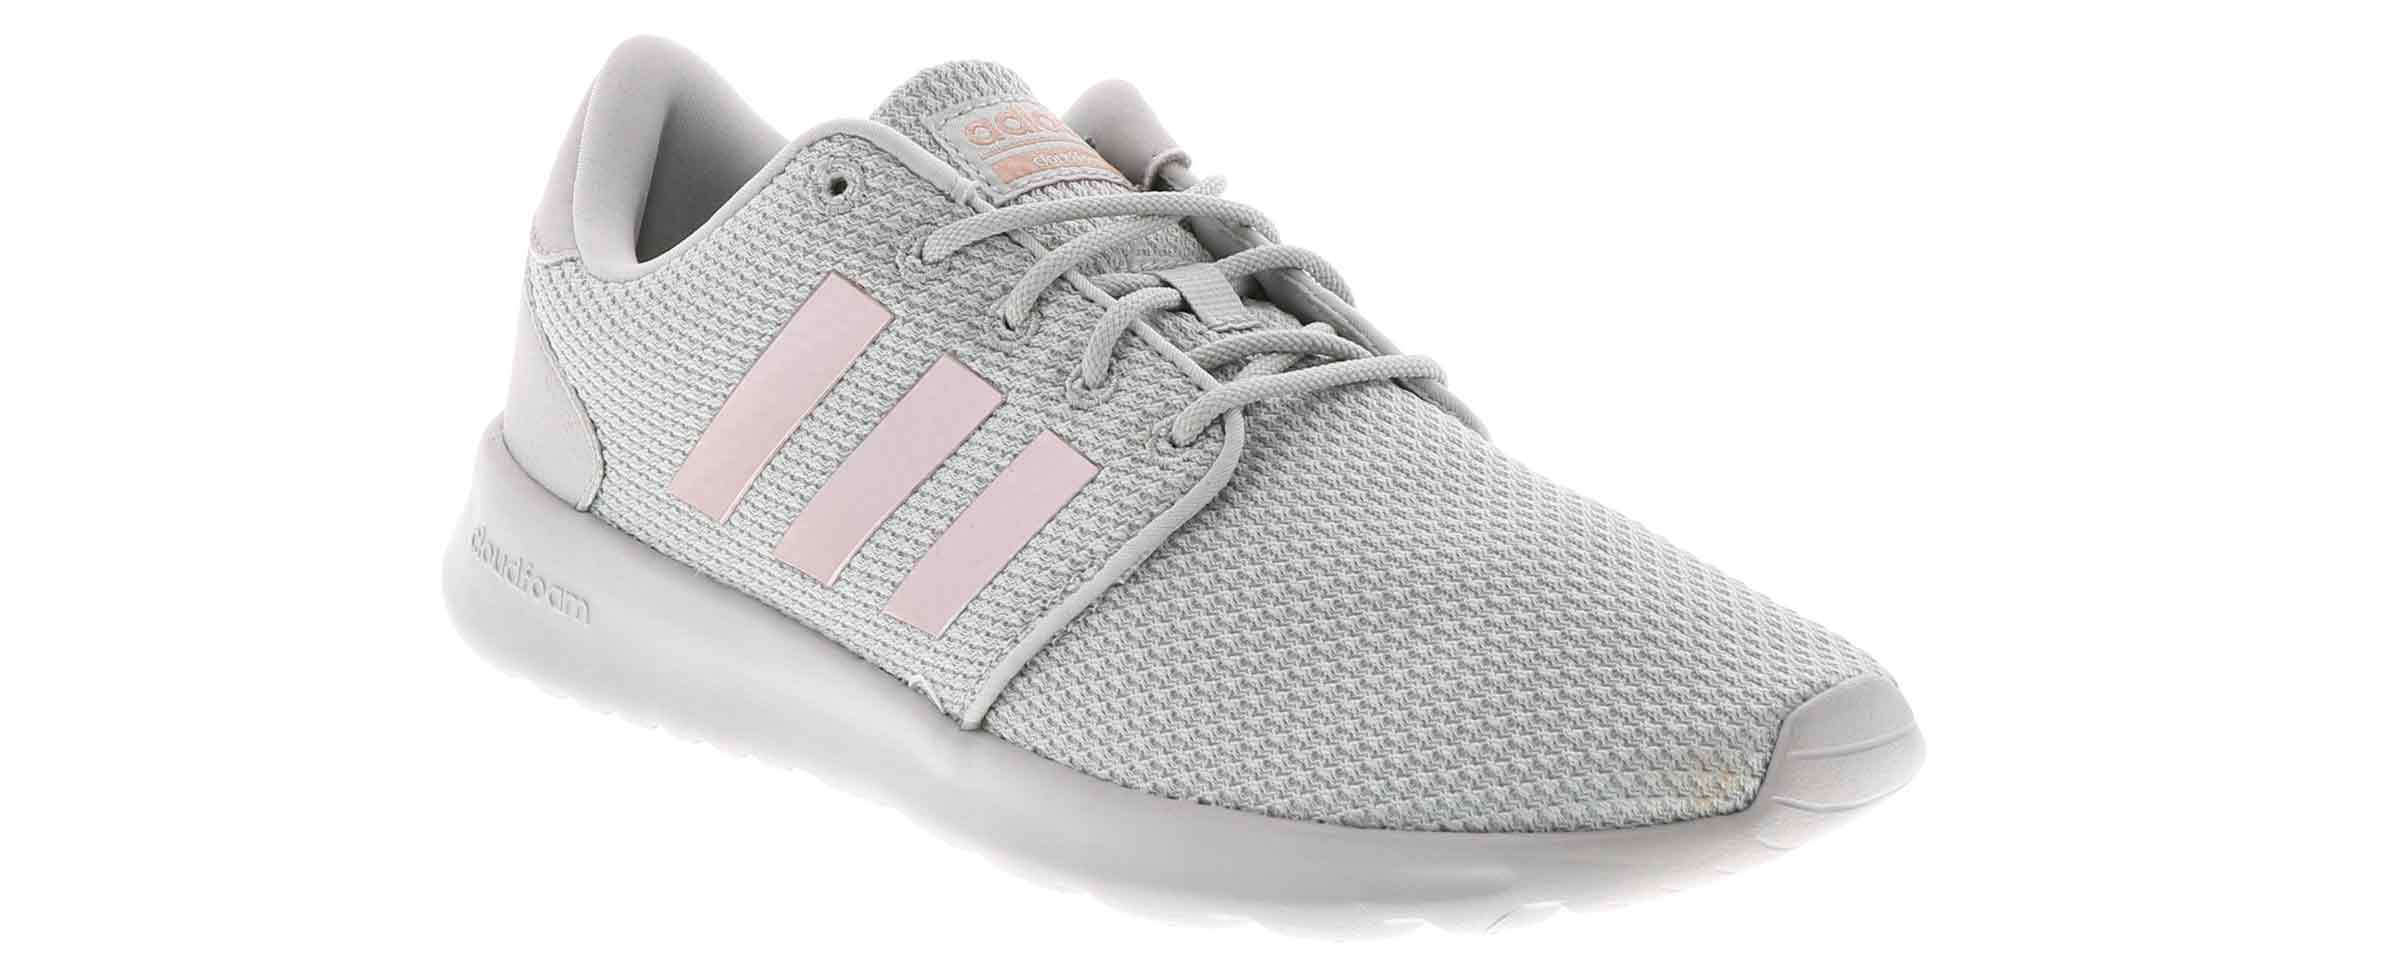 adidas tennis shoes rose gold, Adidas Style Racer Women